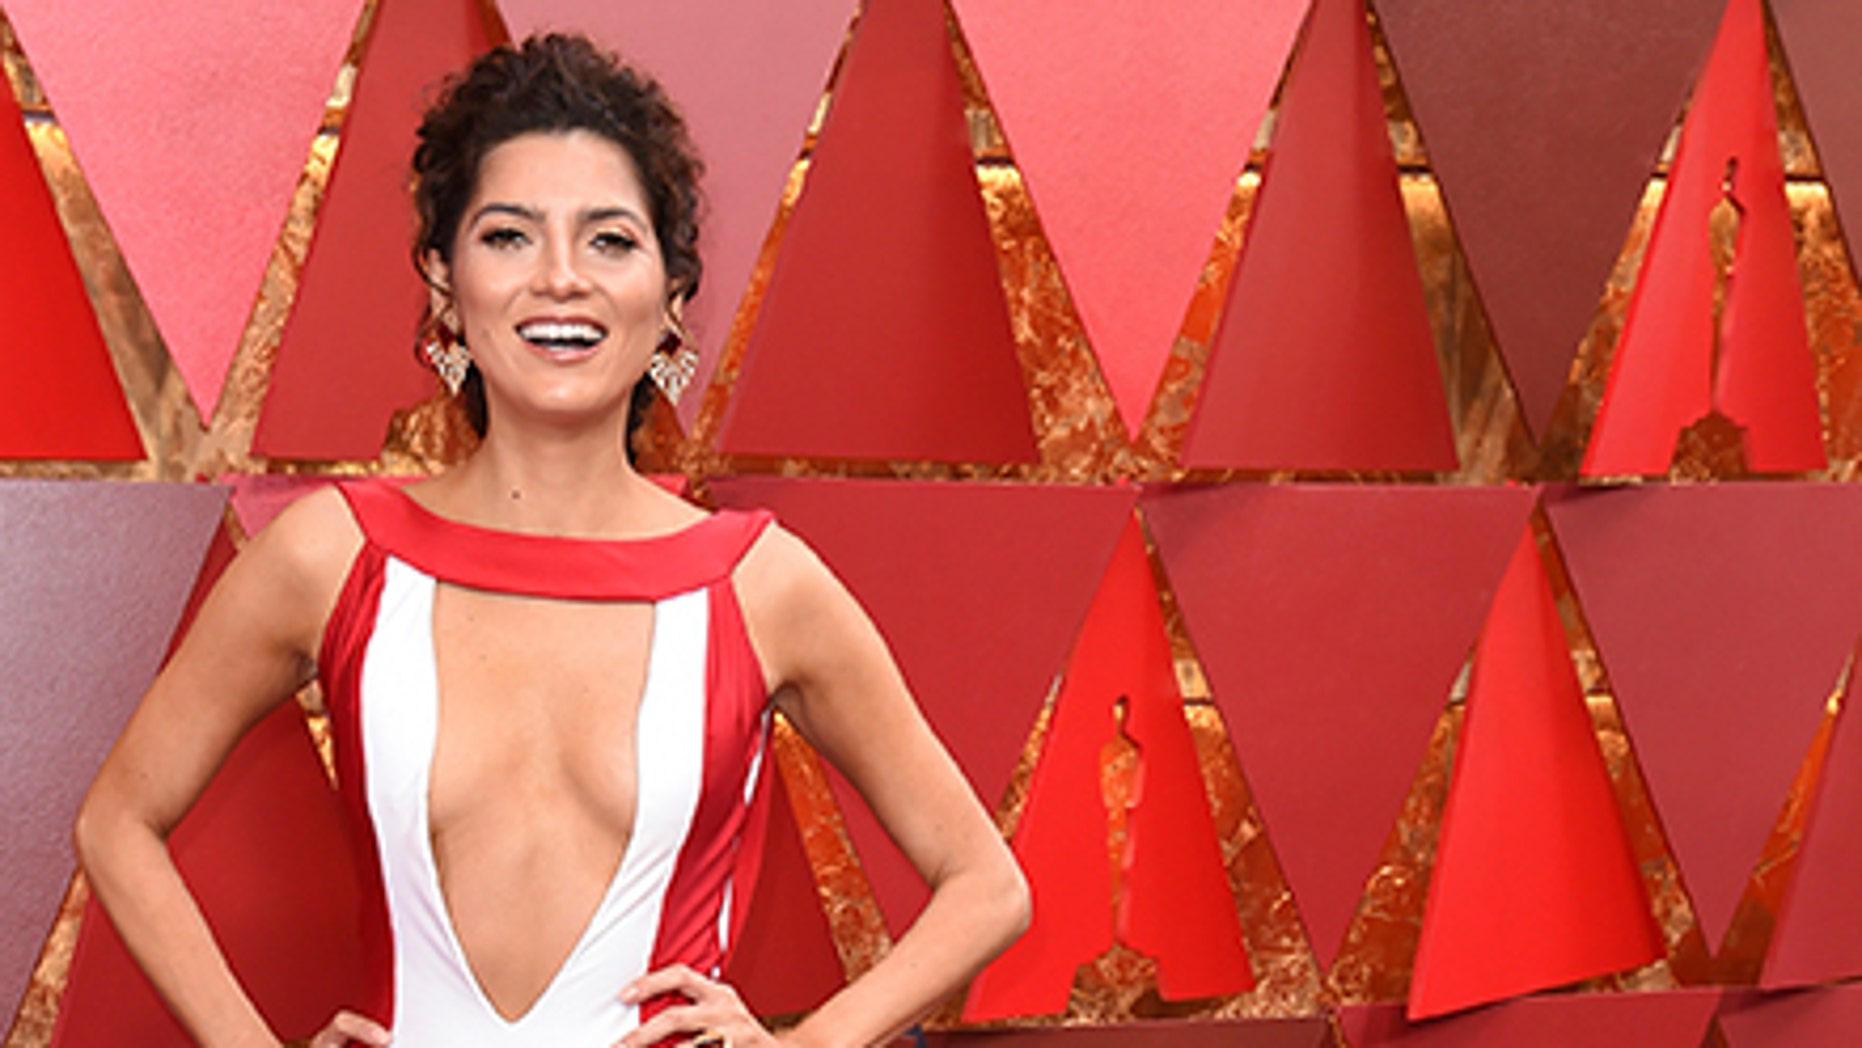 Blanca Blanco is known for making a statement with her red carpet looks and her latest ensemble did not disappoint. The actress chose a white gown with red detailing and a plunging neckline.